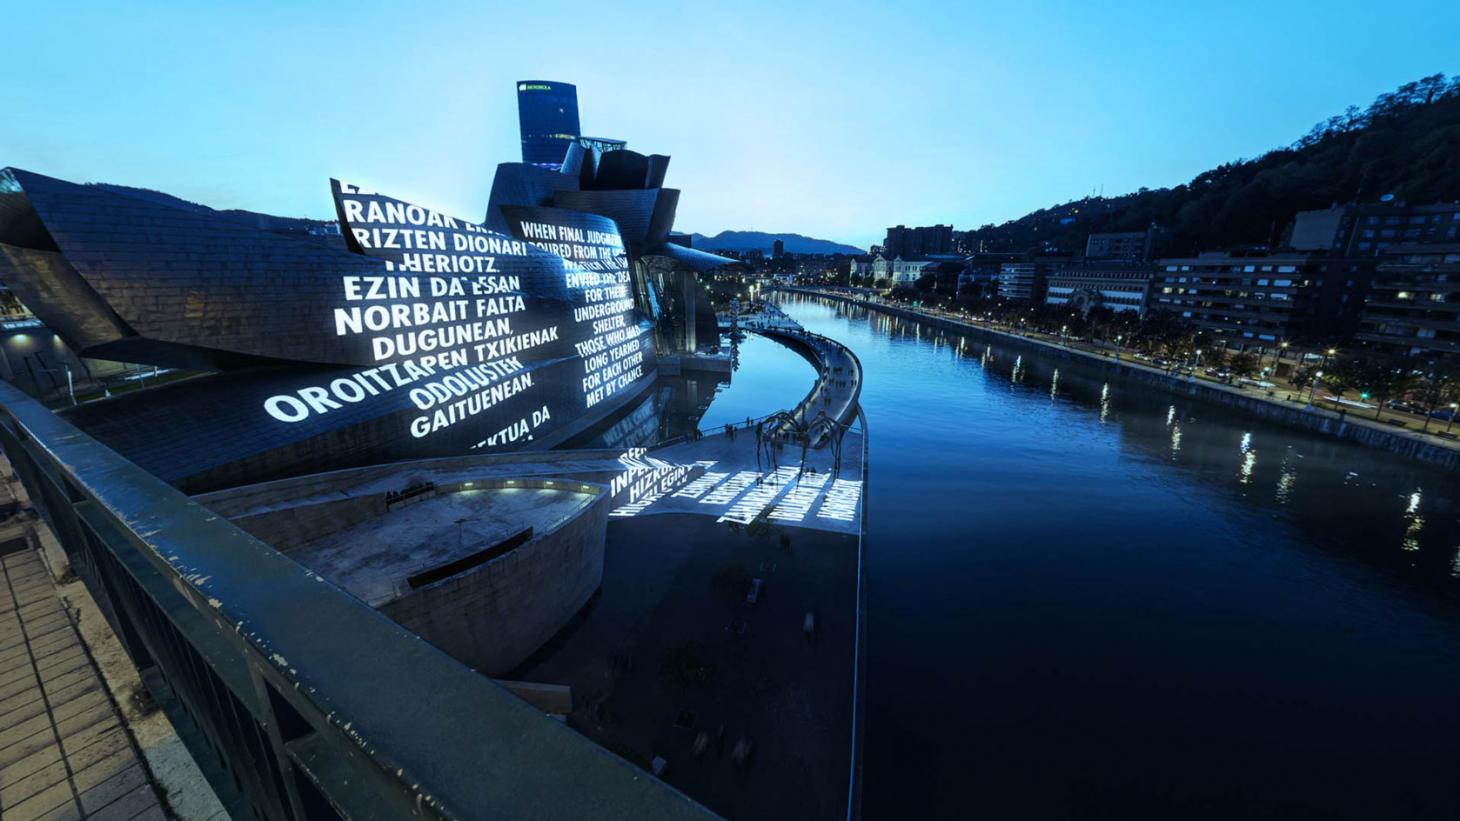 LIKE BEAUTY IN FLAMES, 2021 by Jenny Holzer, an AR text installation at the Guggenheim Bilbao in Spain